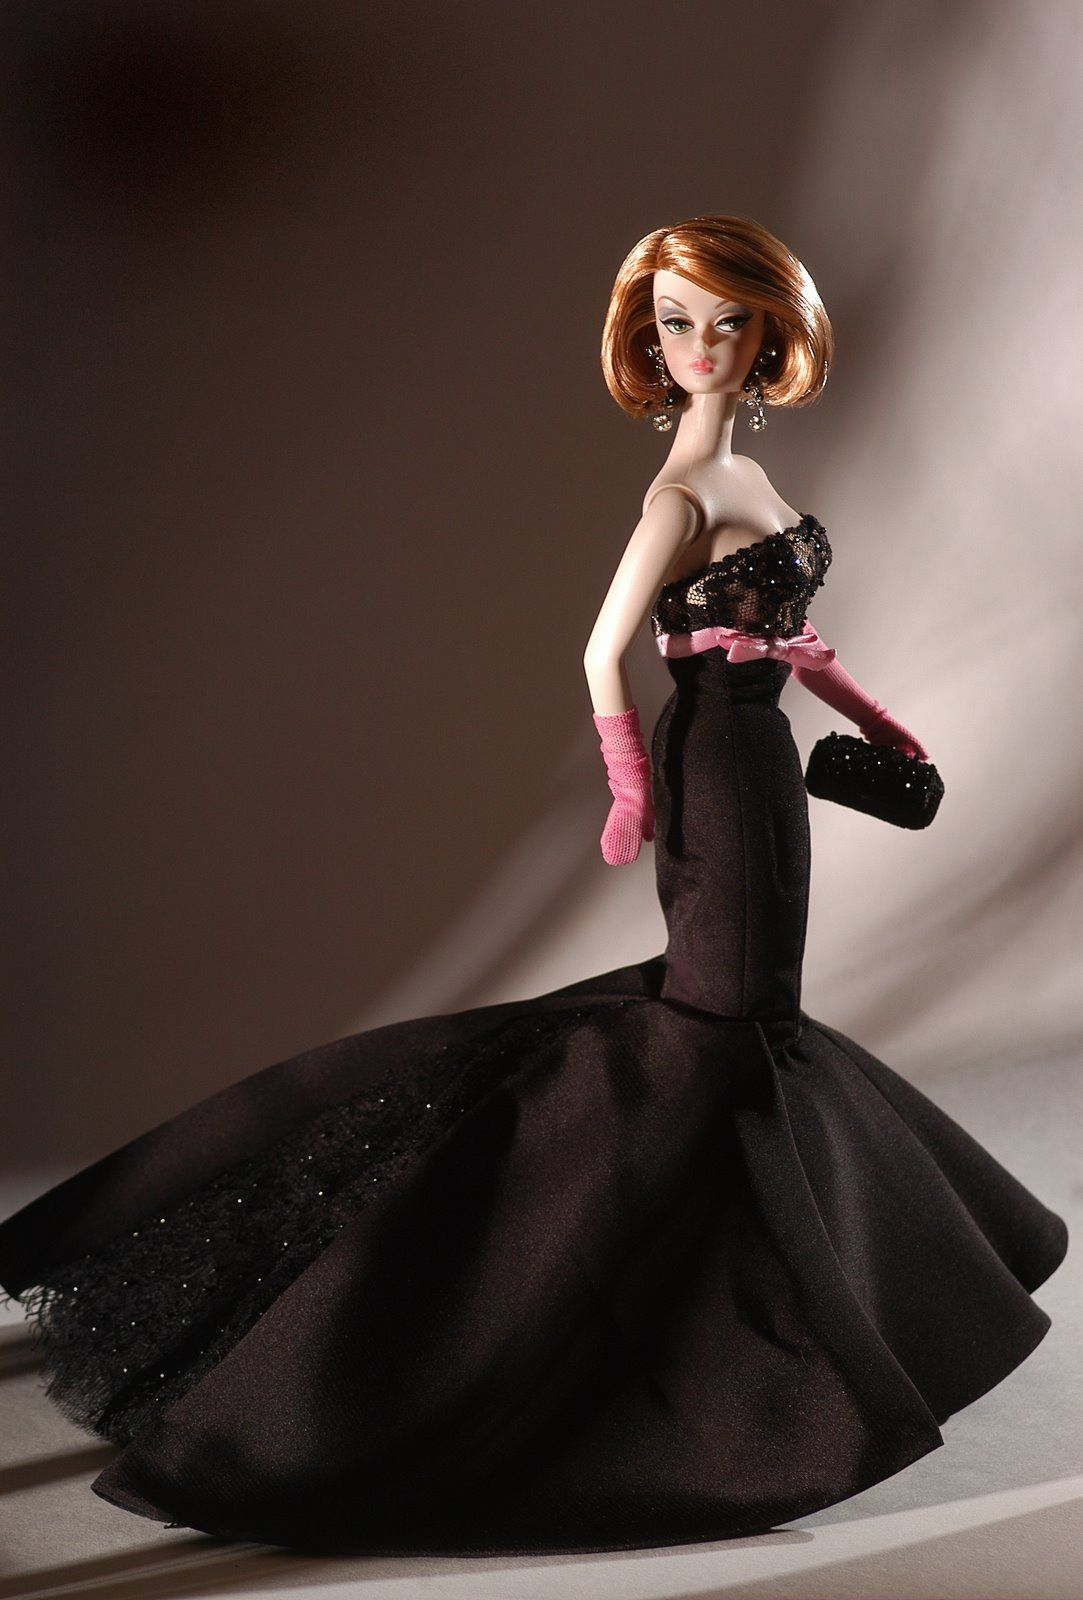 2009 - Barbie Convention, called Fifty, Fitted and Fine